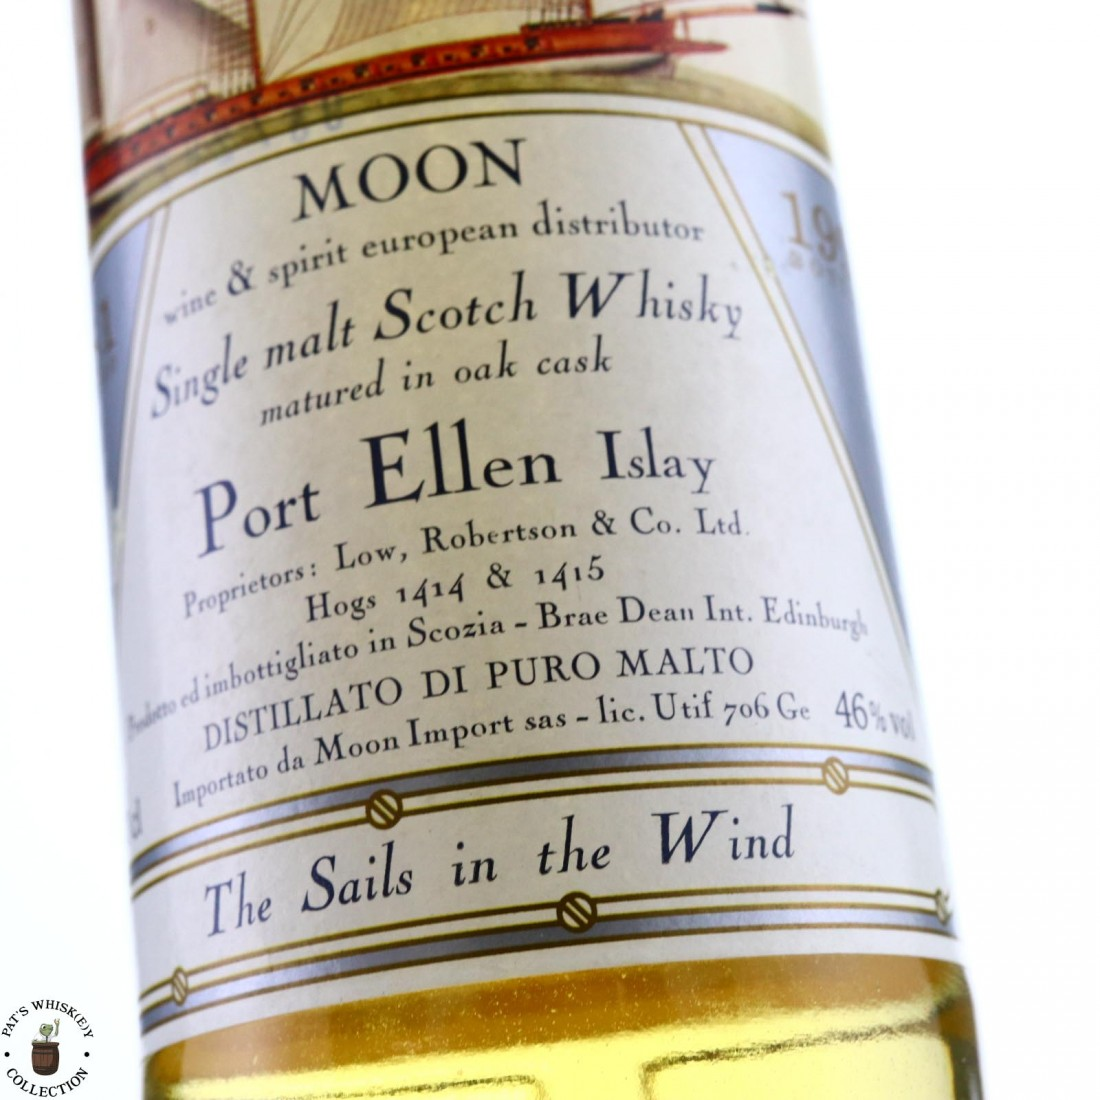 Port Ellen 1981 Moon Import / The Sails in the Wind